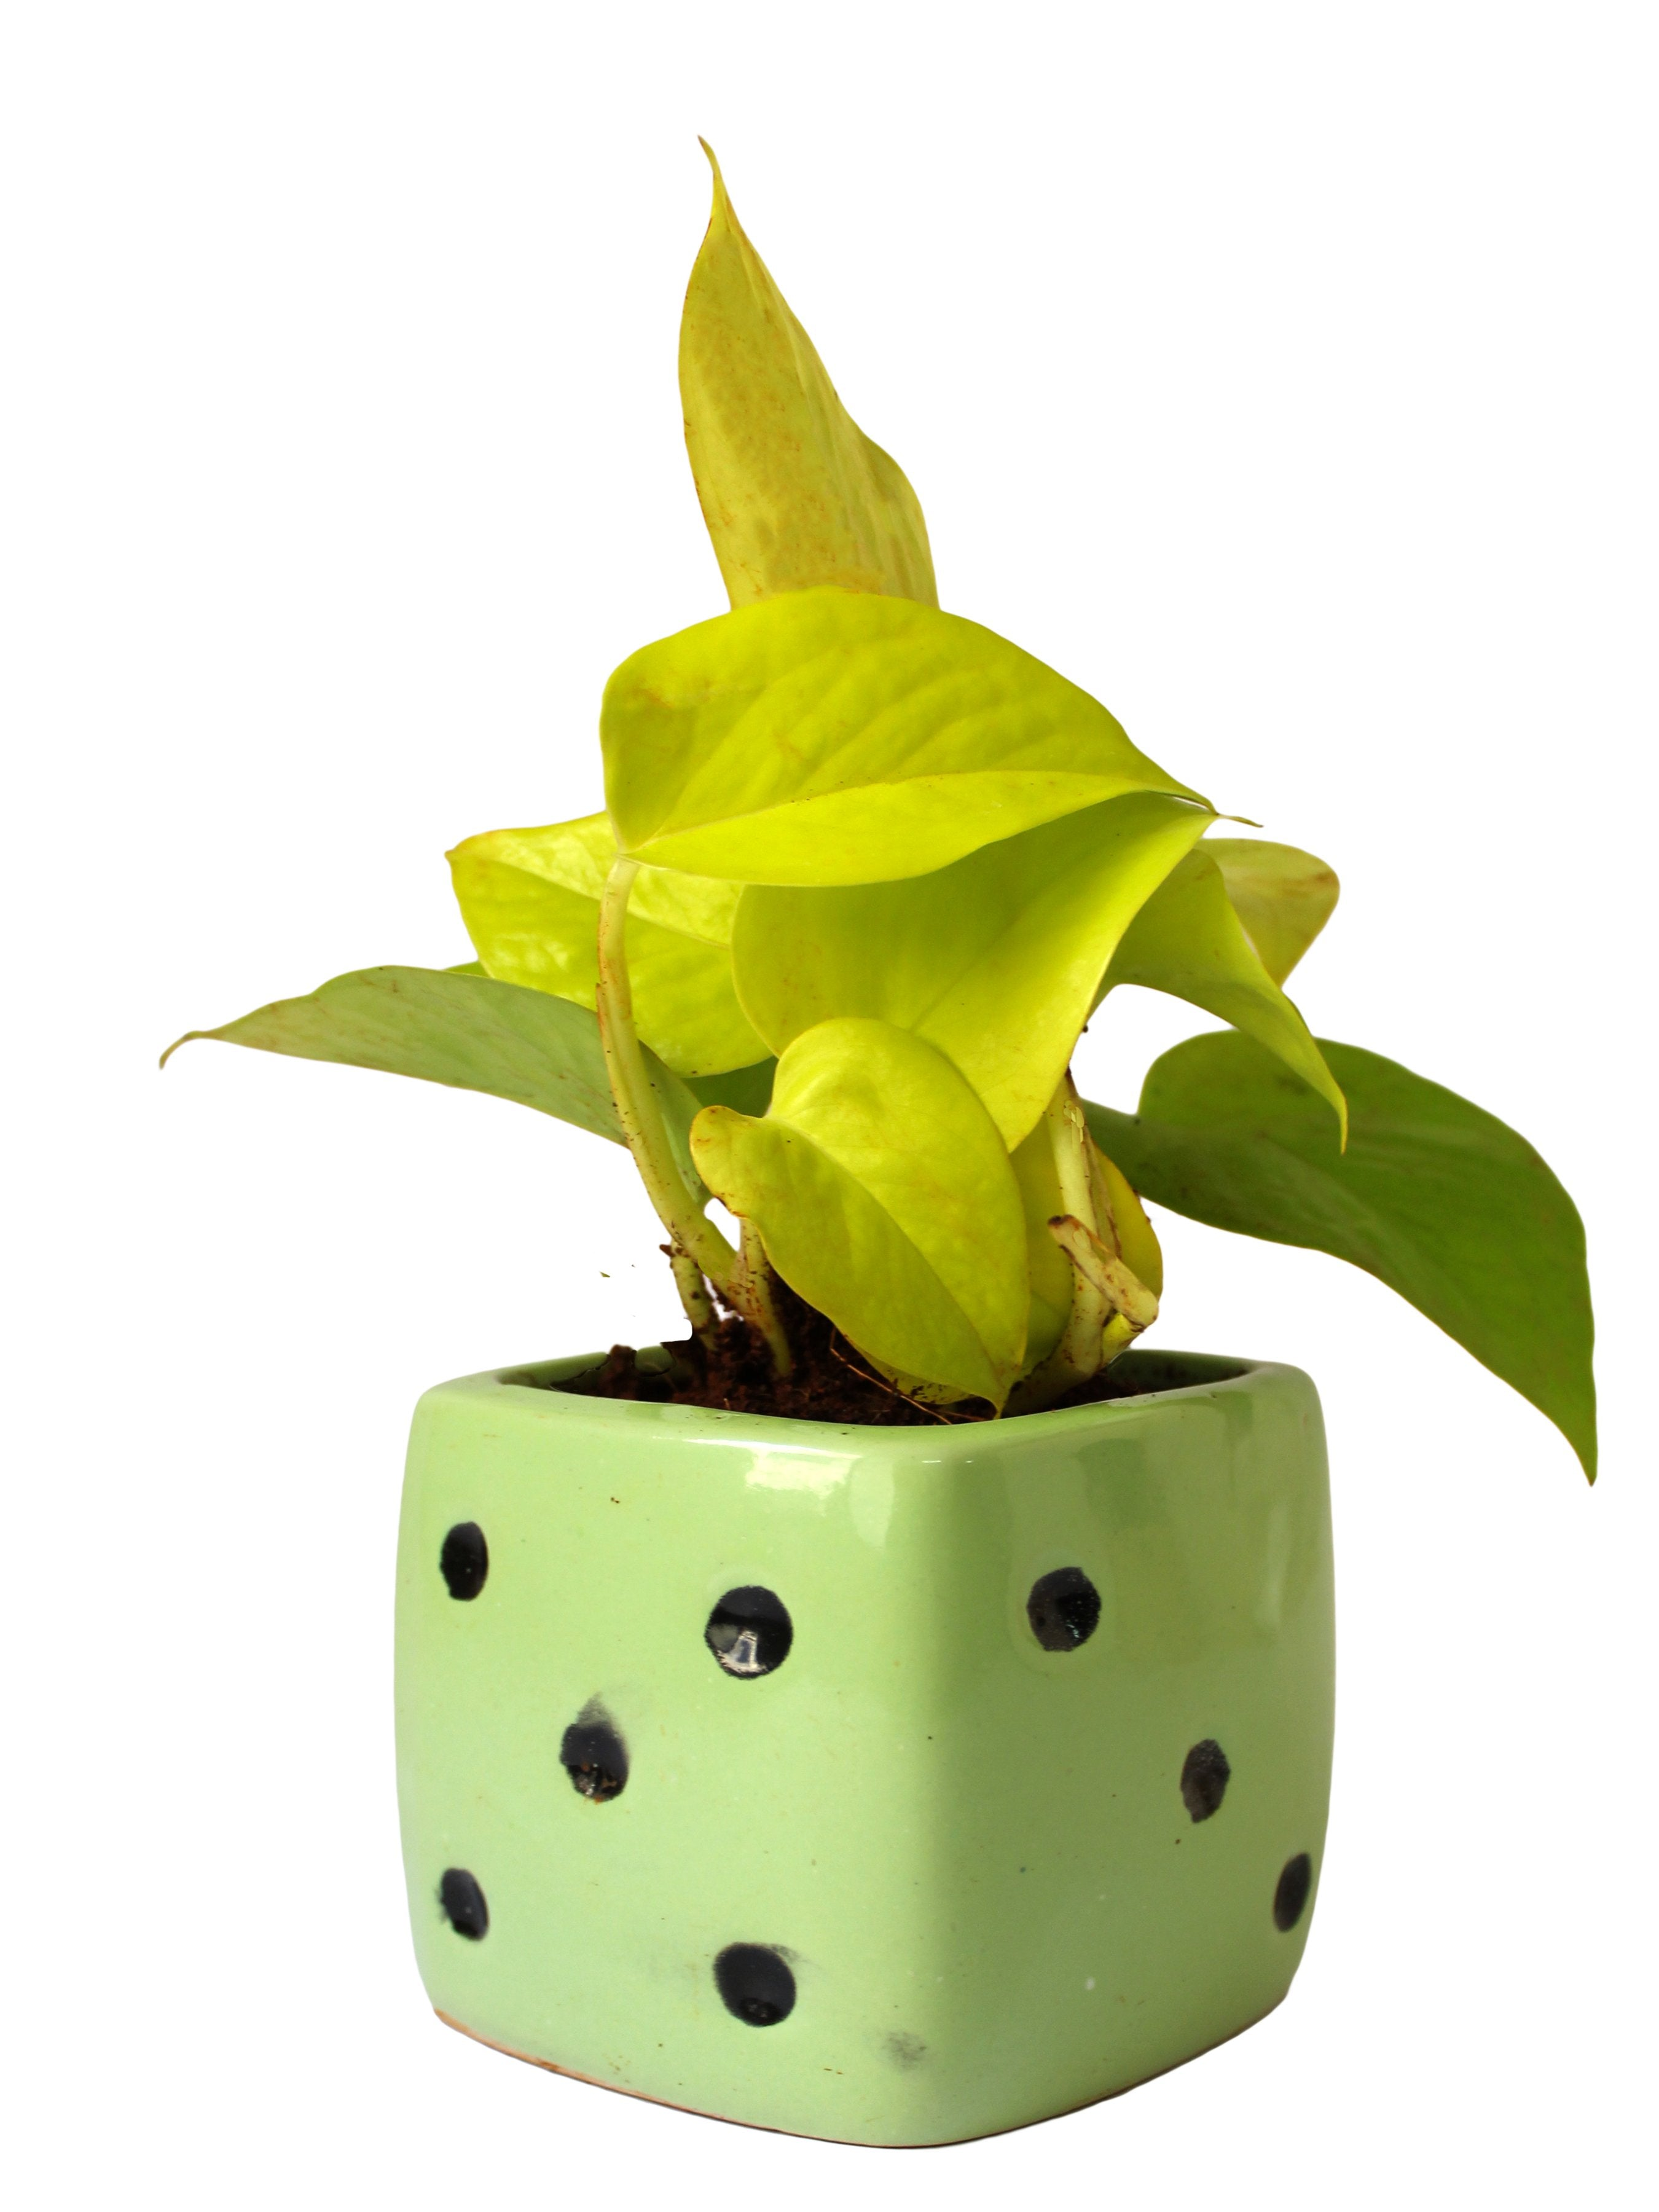 Rolling Nature Good Luck Air Purifying Golden Money Plant In Green Dice Ceramic Pot Plants Online India Rollingnature